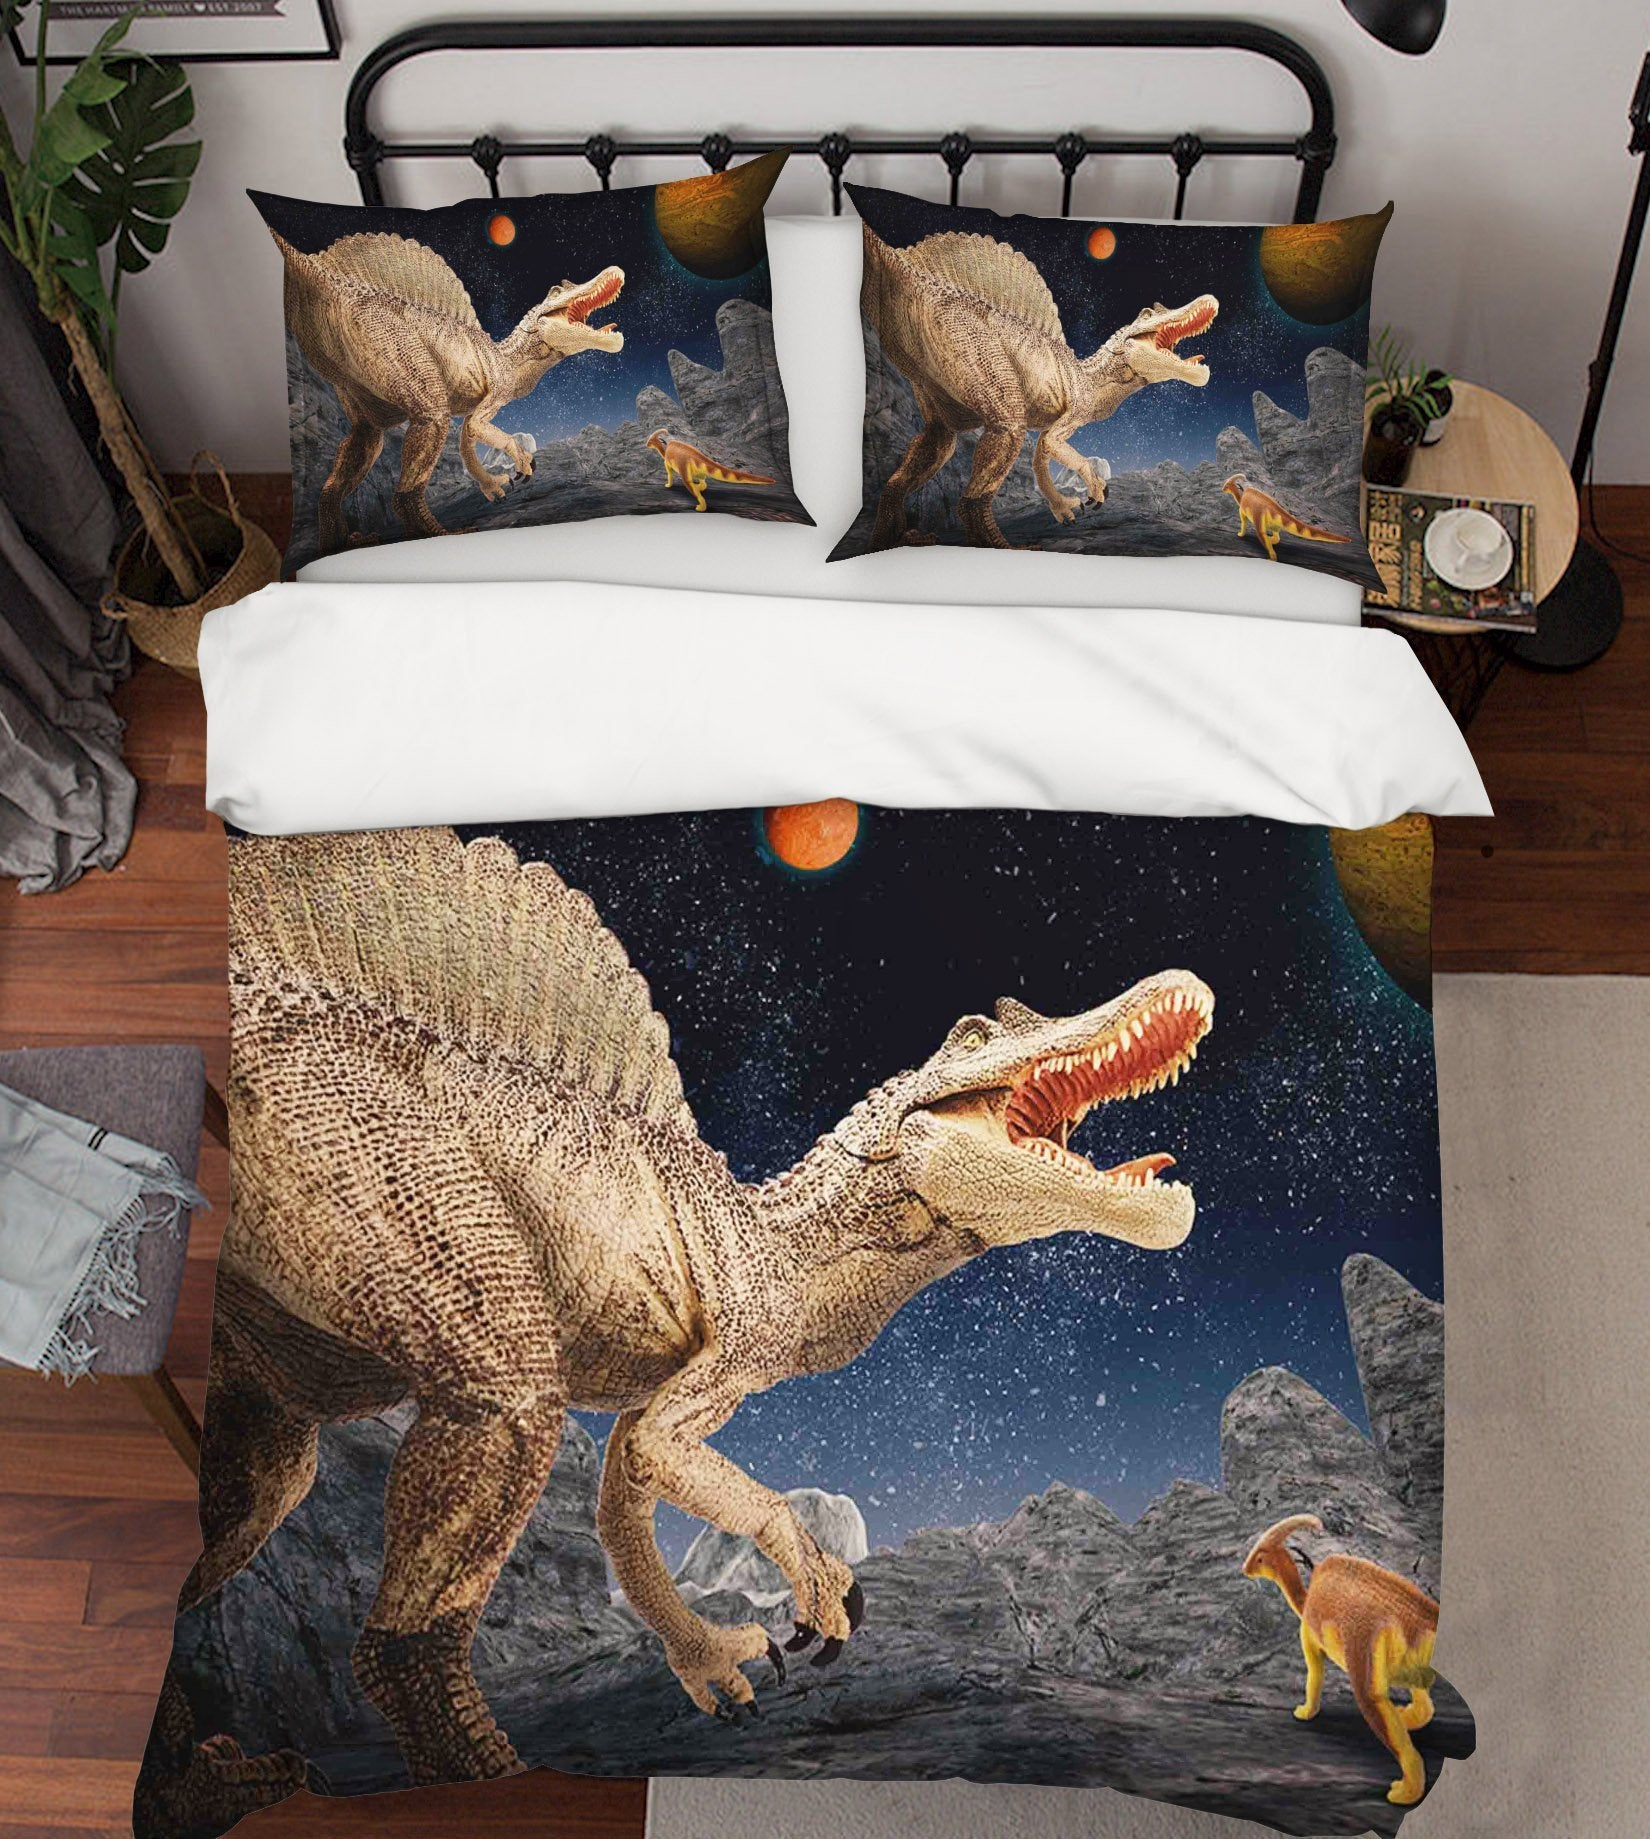 3D Planetary Dinosaur 087 Bed Pillowcases Quilt Wallpaper AJ Wallpaper